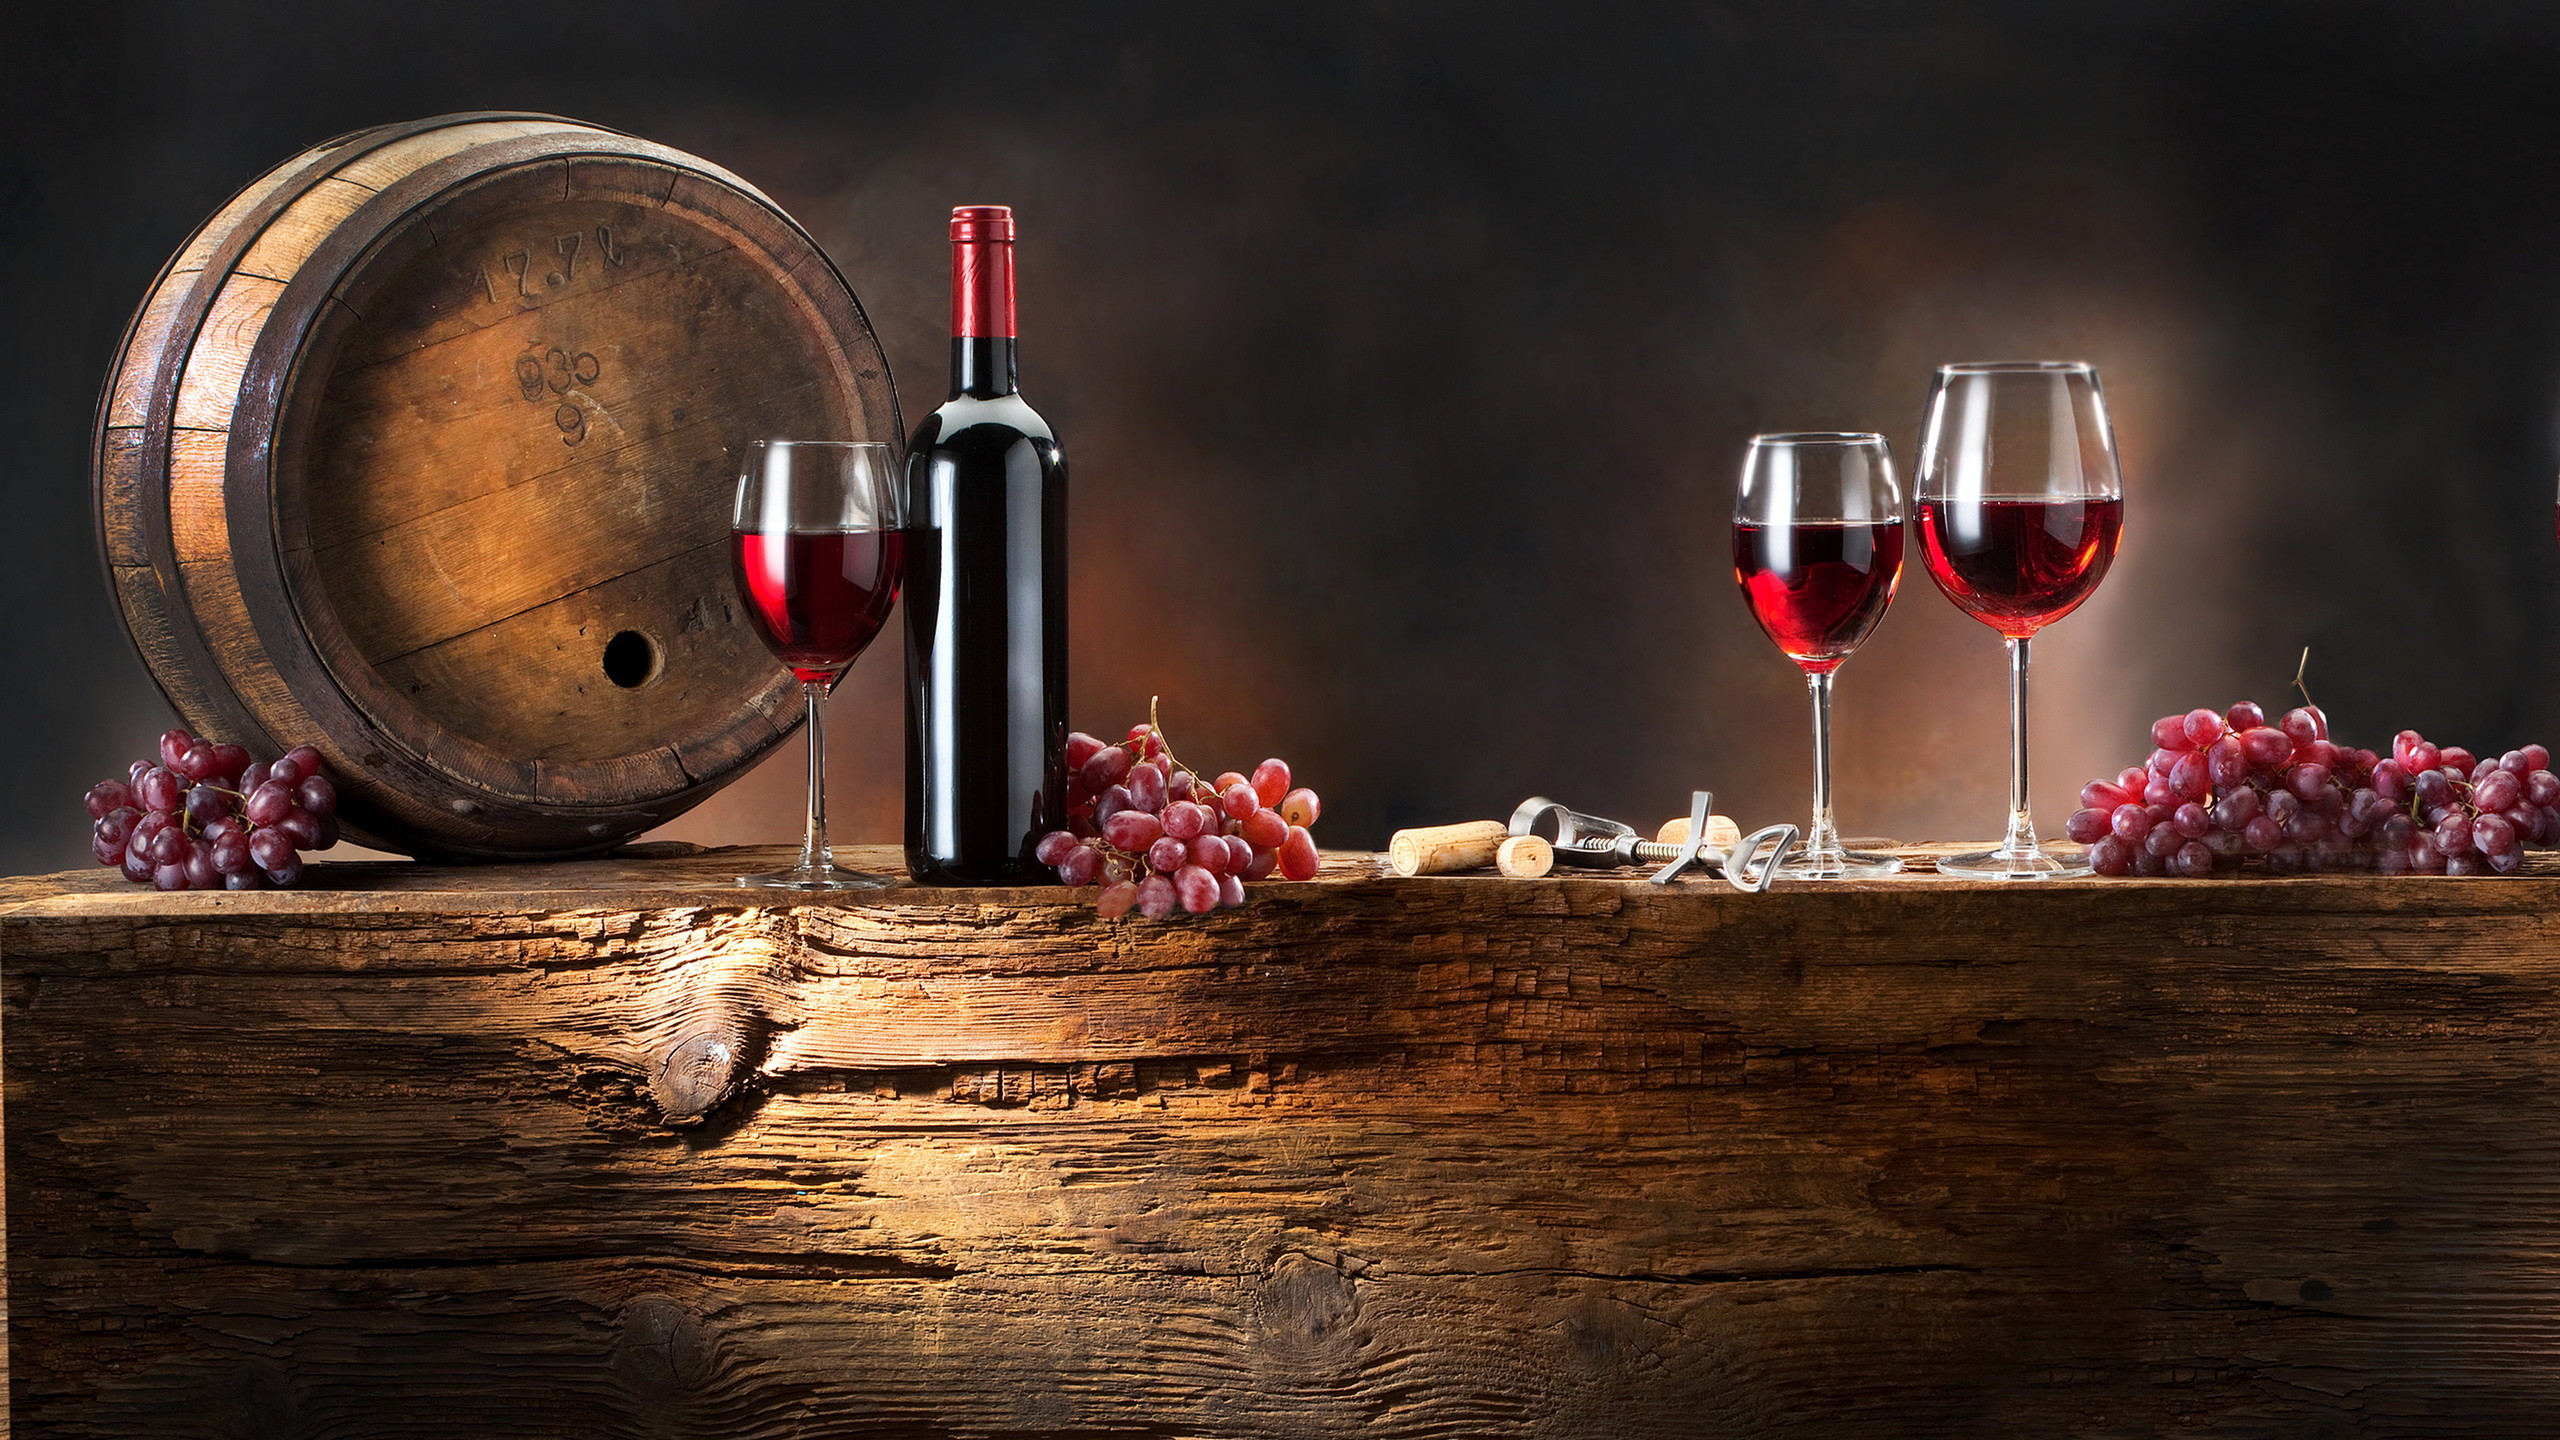 Res: 2560x1440, 38885623-wine-wallpapers